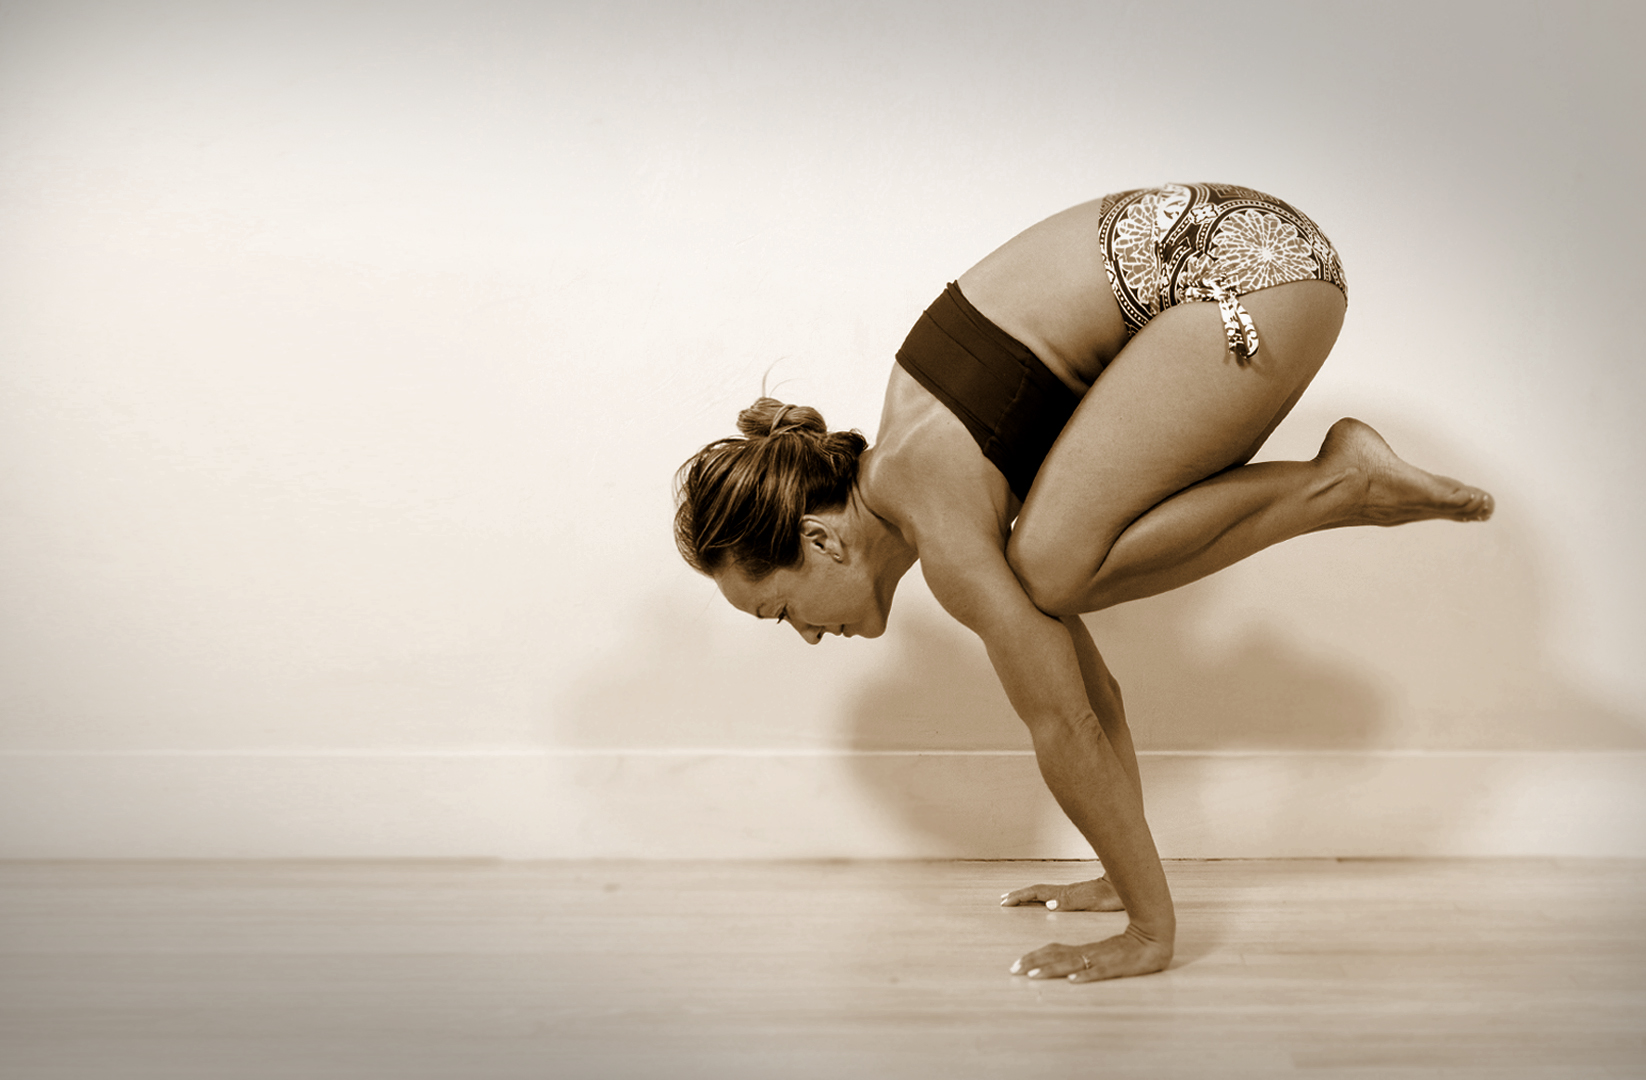 Bakasana (Crane Pose) – Living with Equanimity